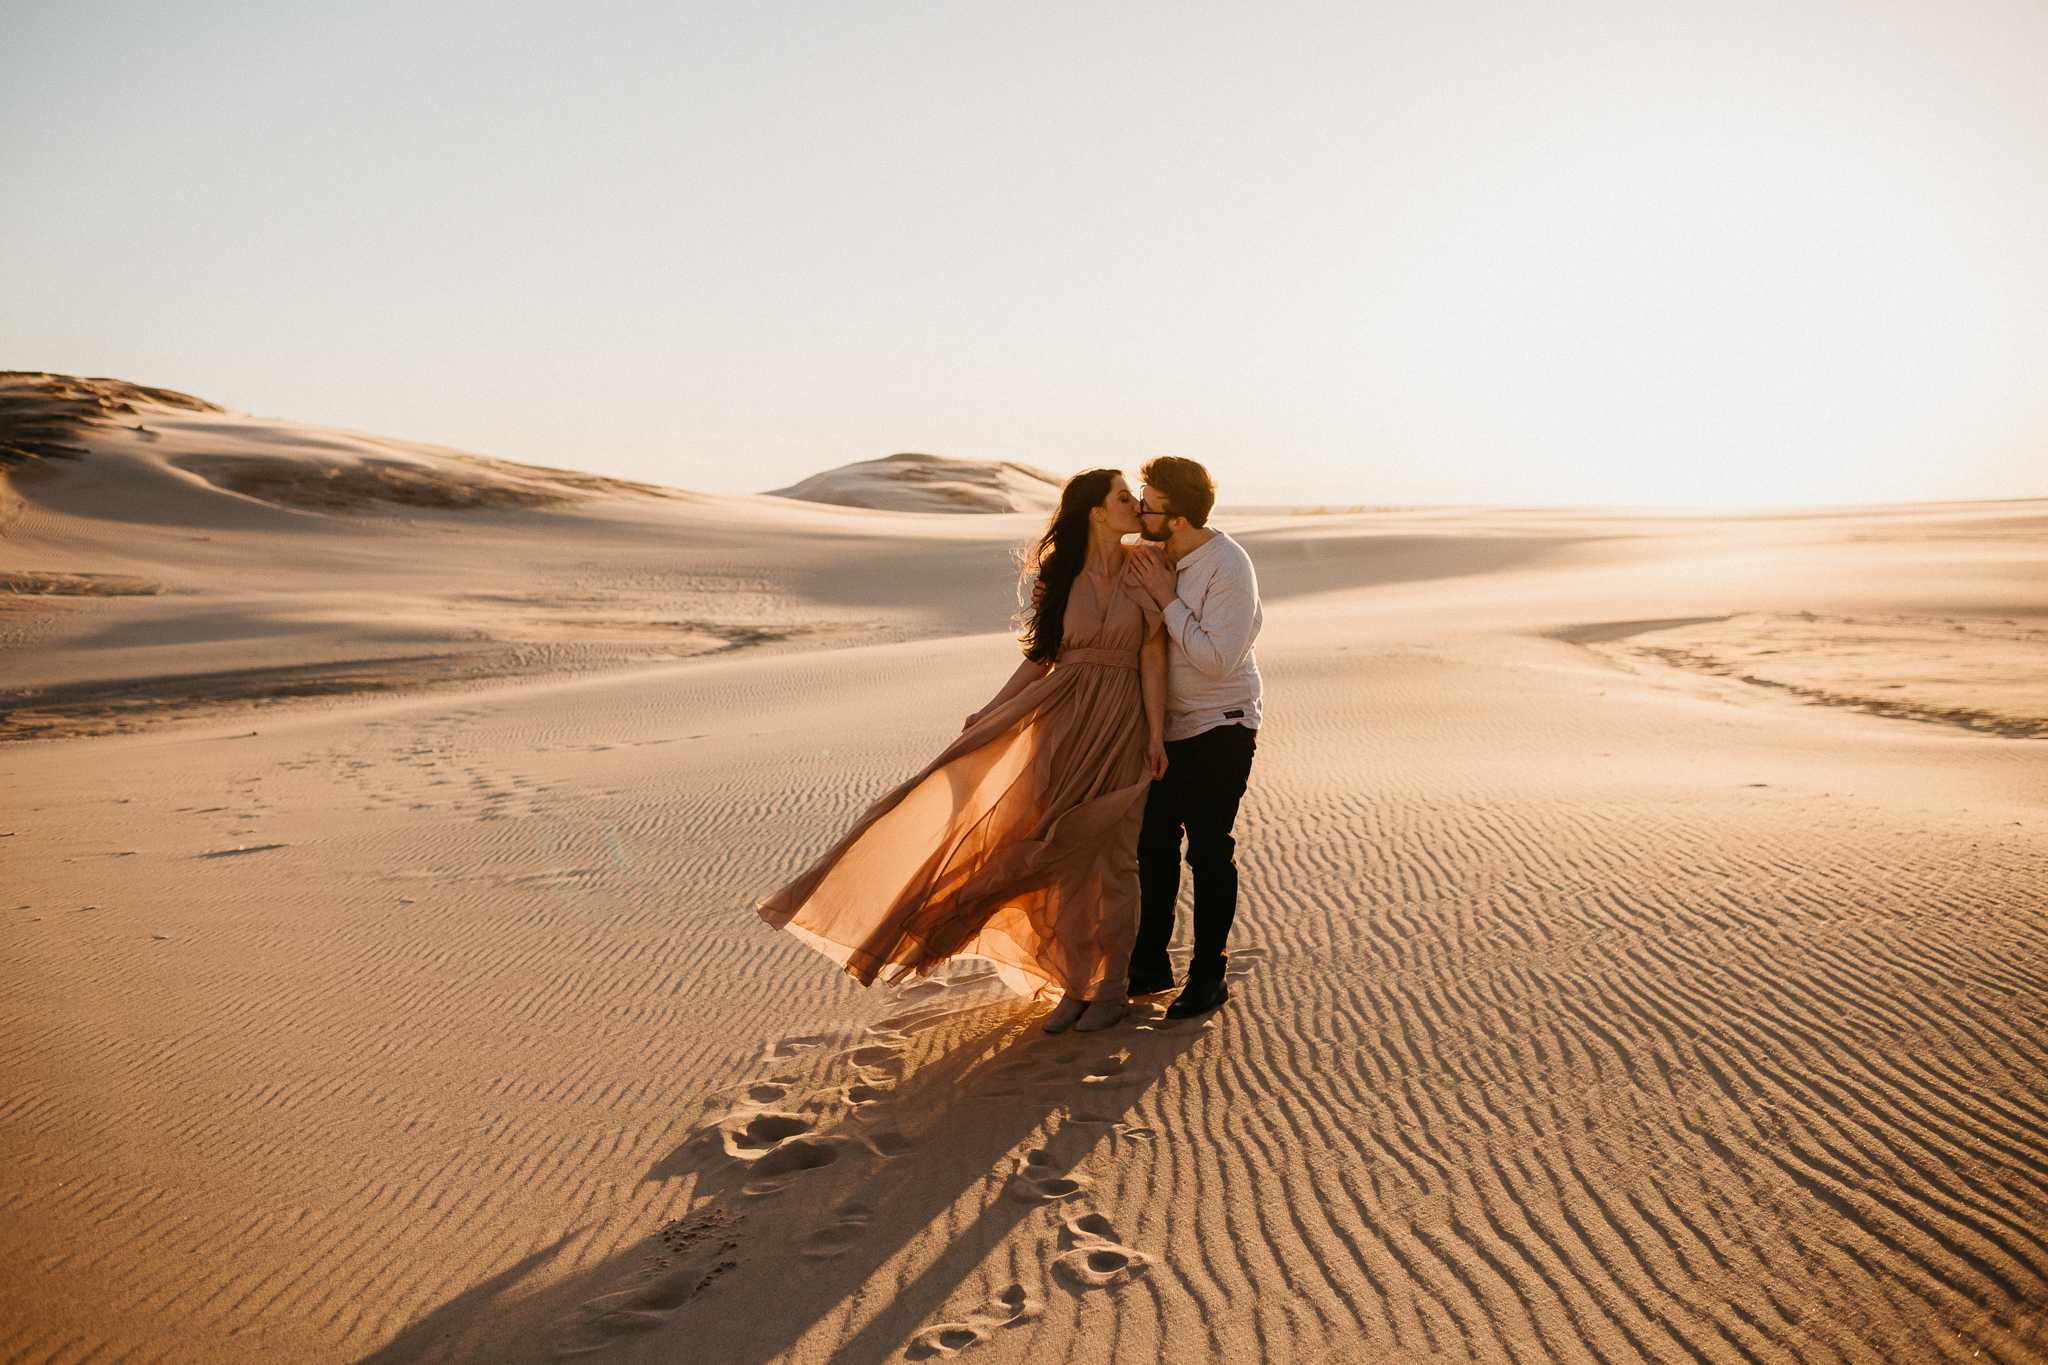 eastlyn-bright-silver-lake-sand-dunes-michigan-wedding-engagement-photographer-51.jpg